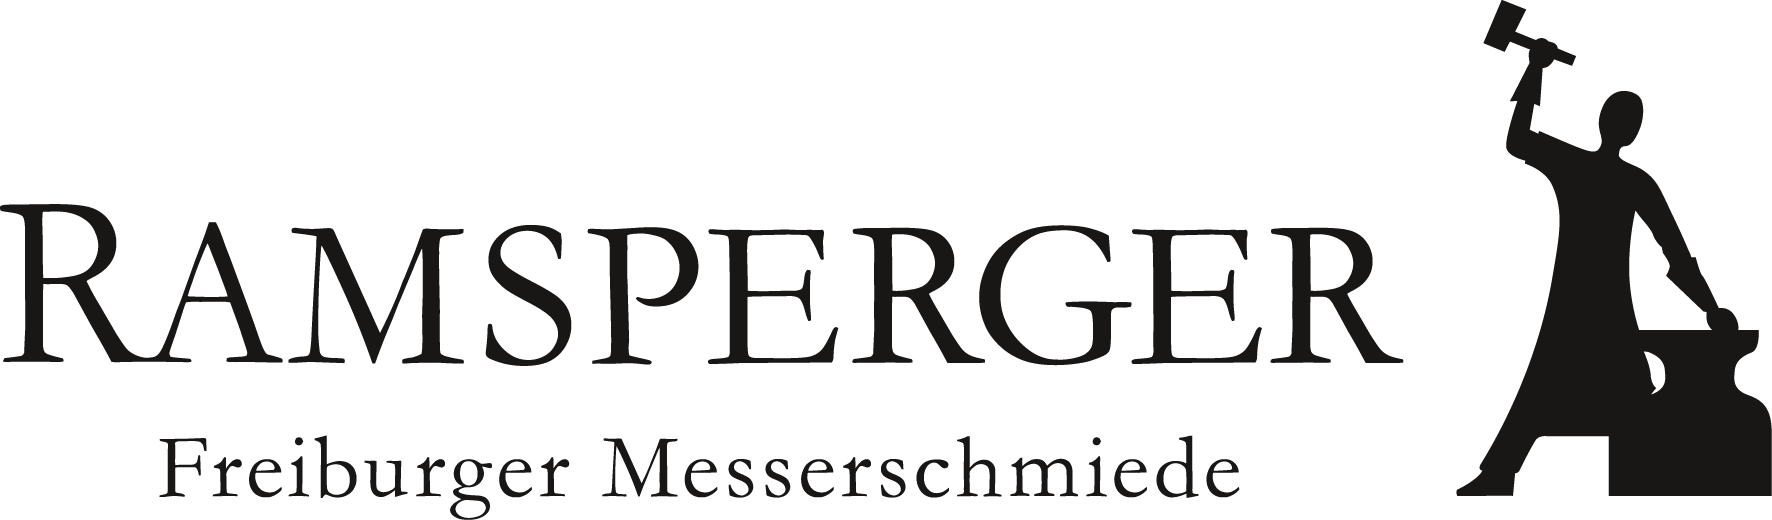 Ramsperger Messerschmiede